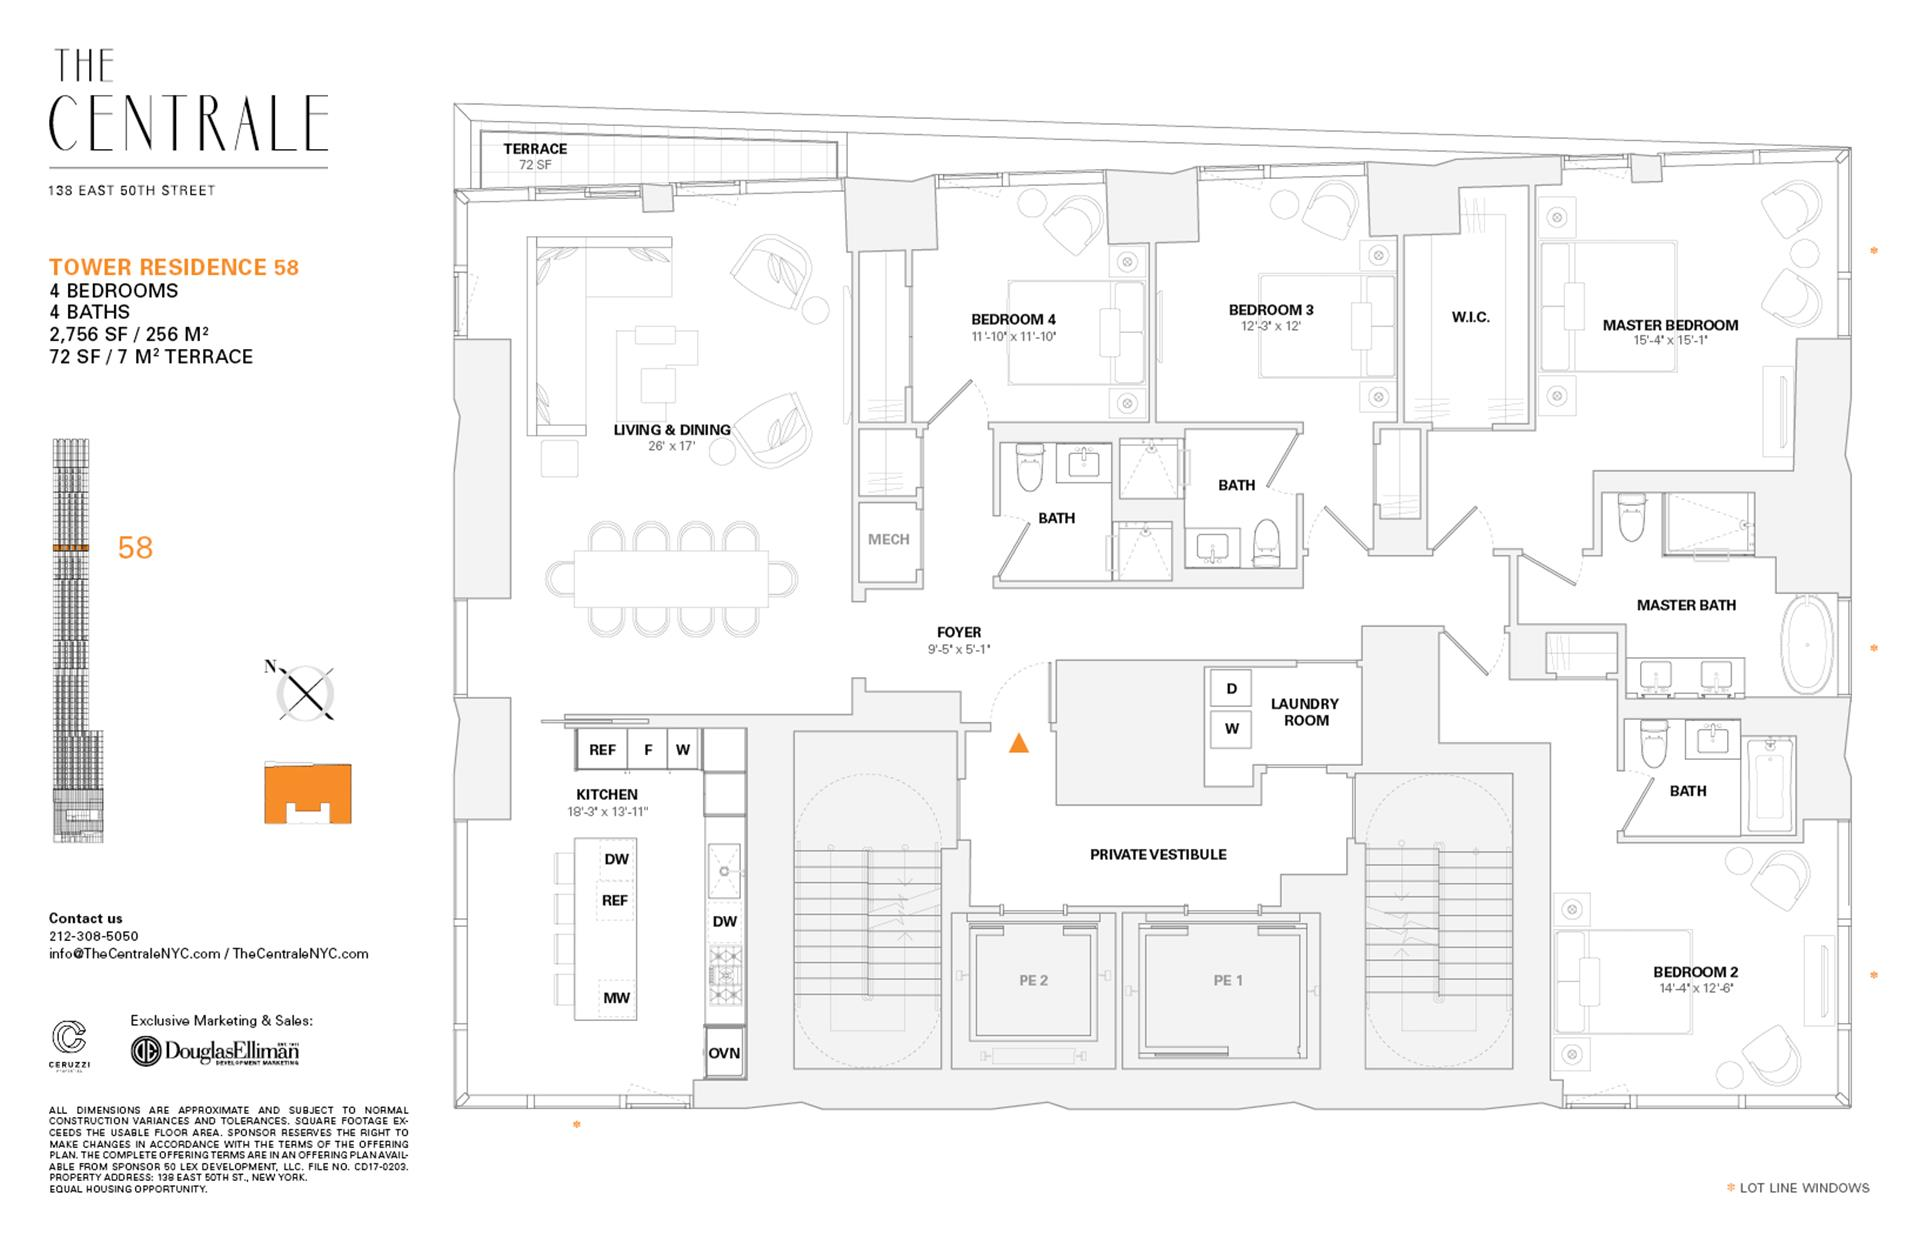 Floor plan of The Centrale, 138 East 50th Street, TR58 - Midtown, New York